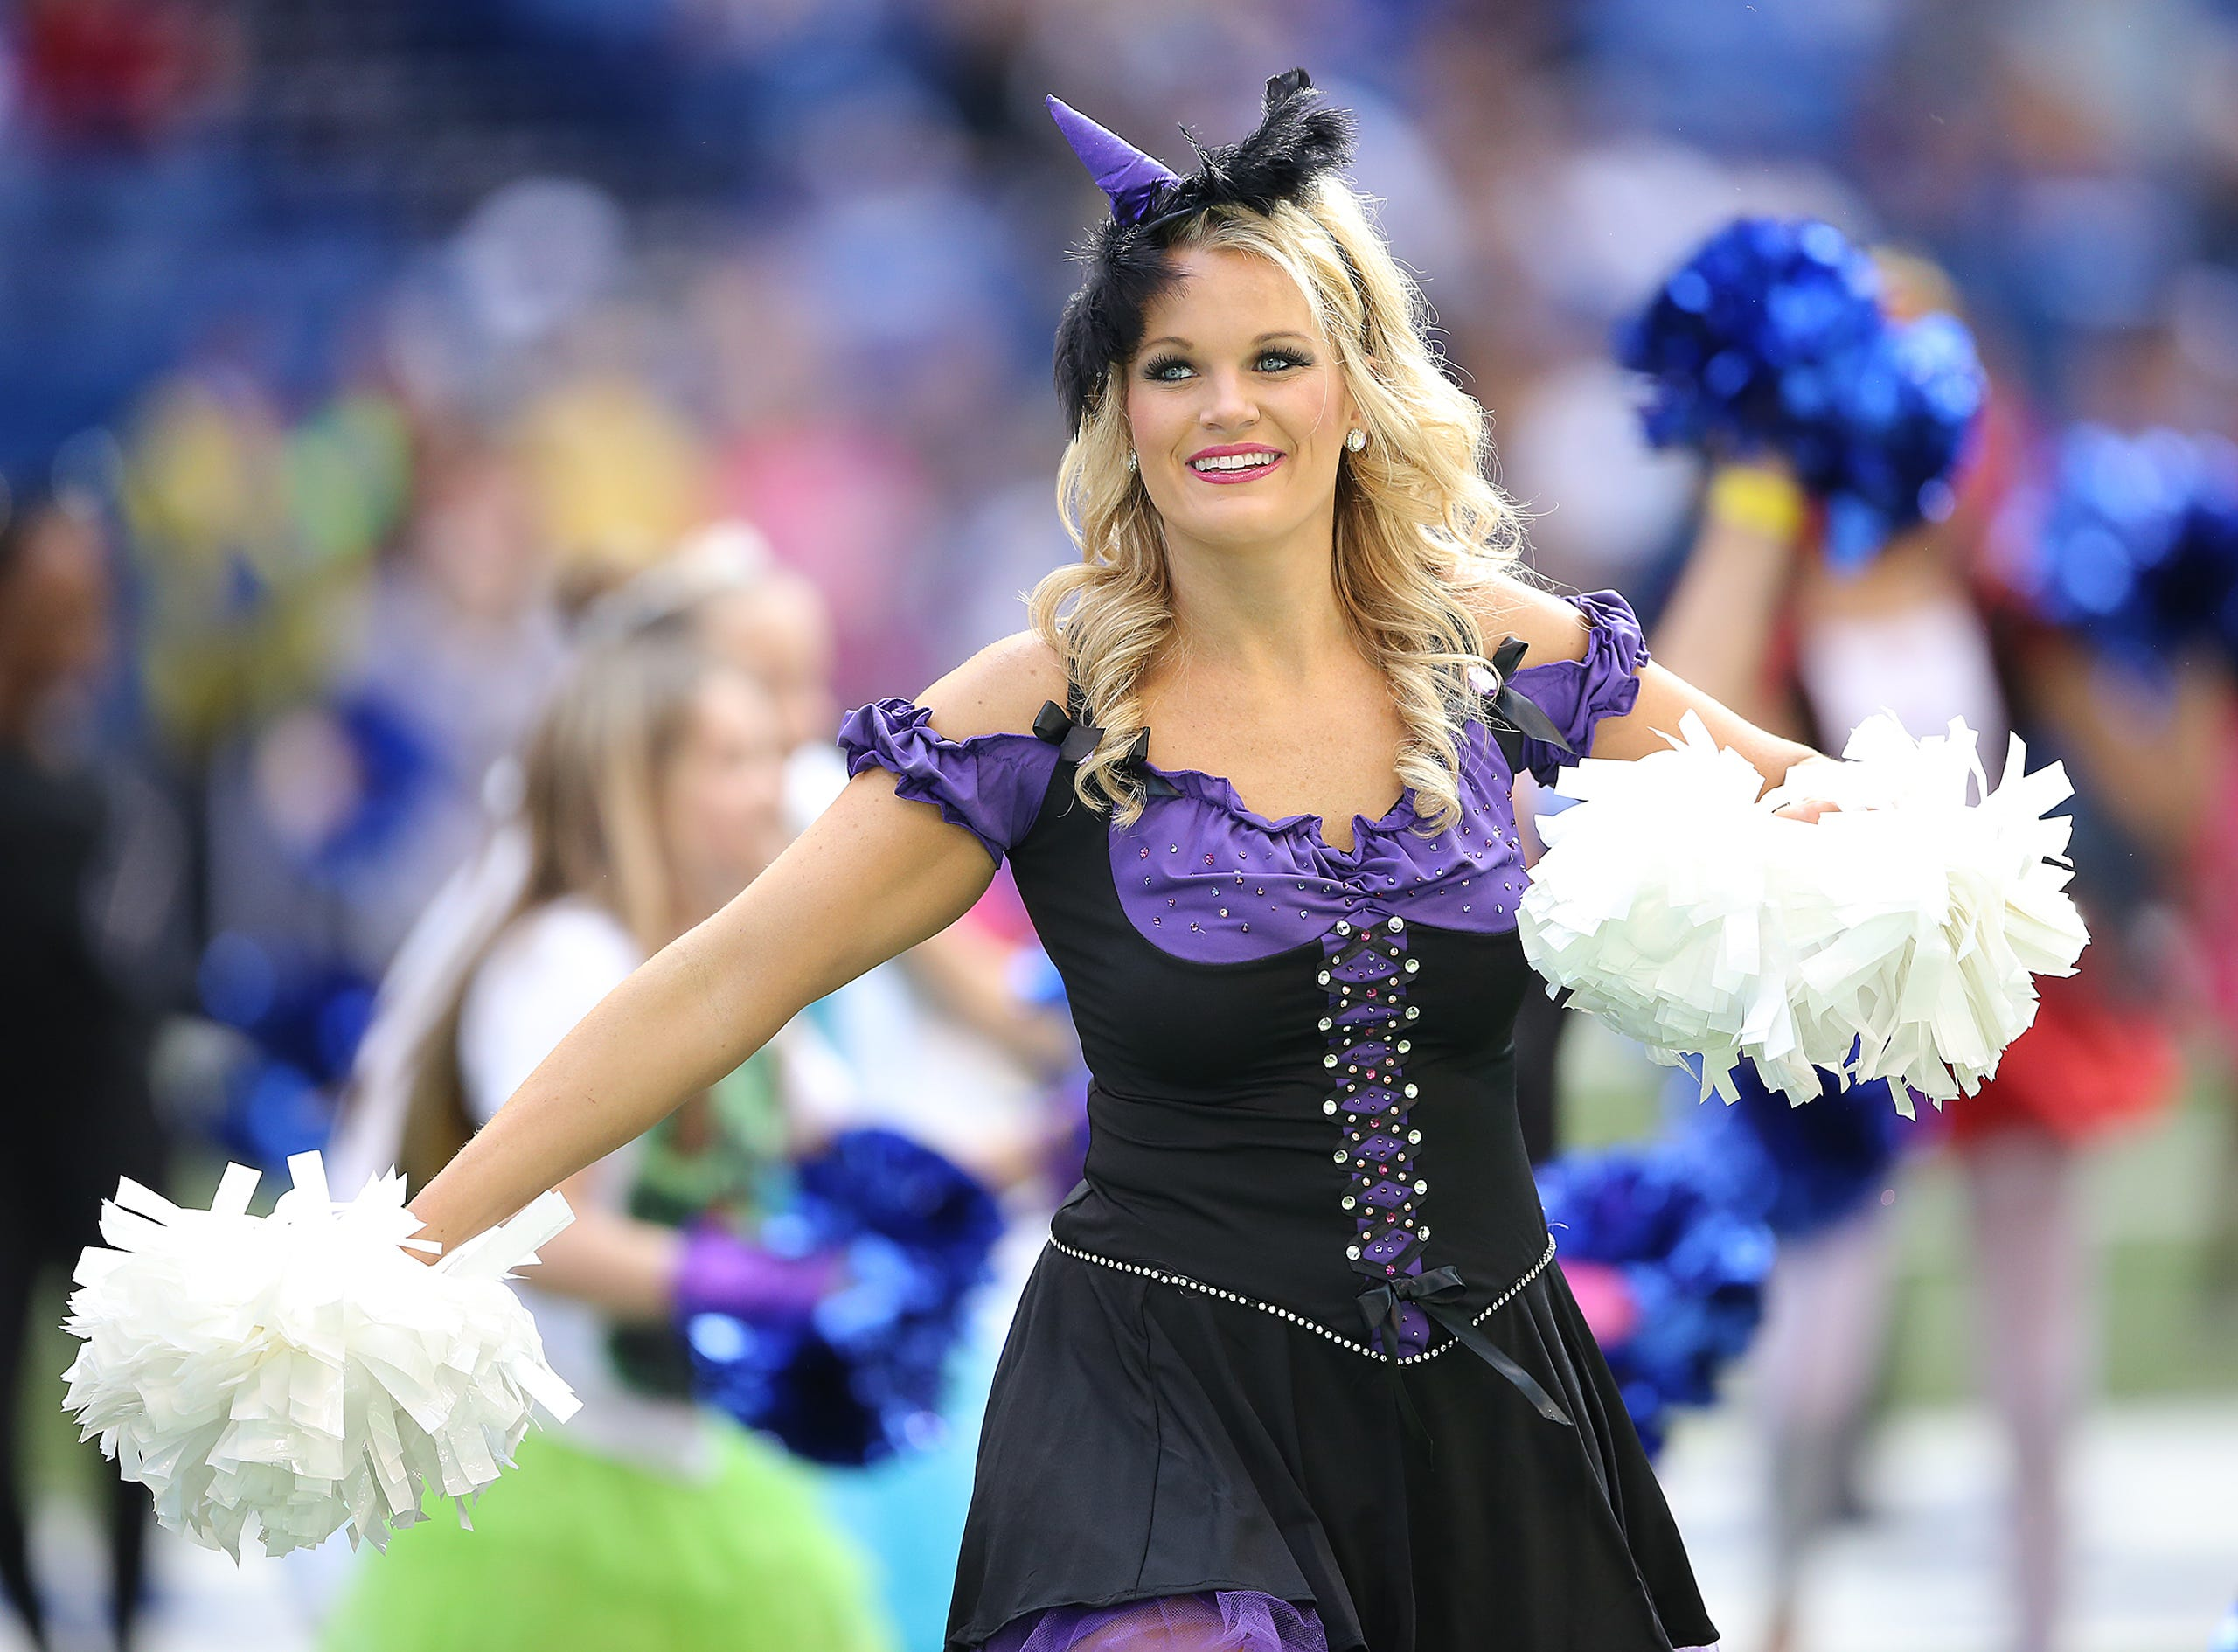 Colts Cheerleaders In The Best Halloween Costumes Sunday